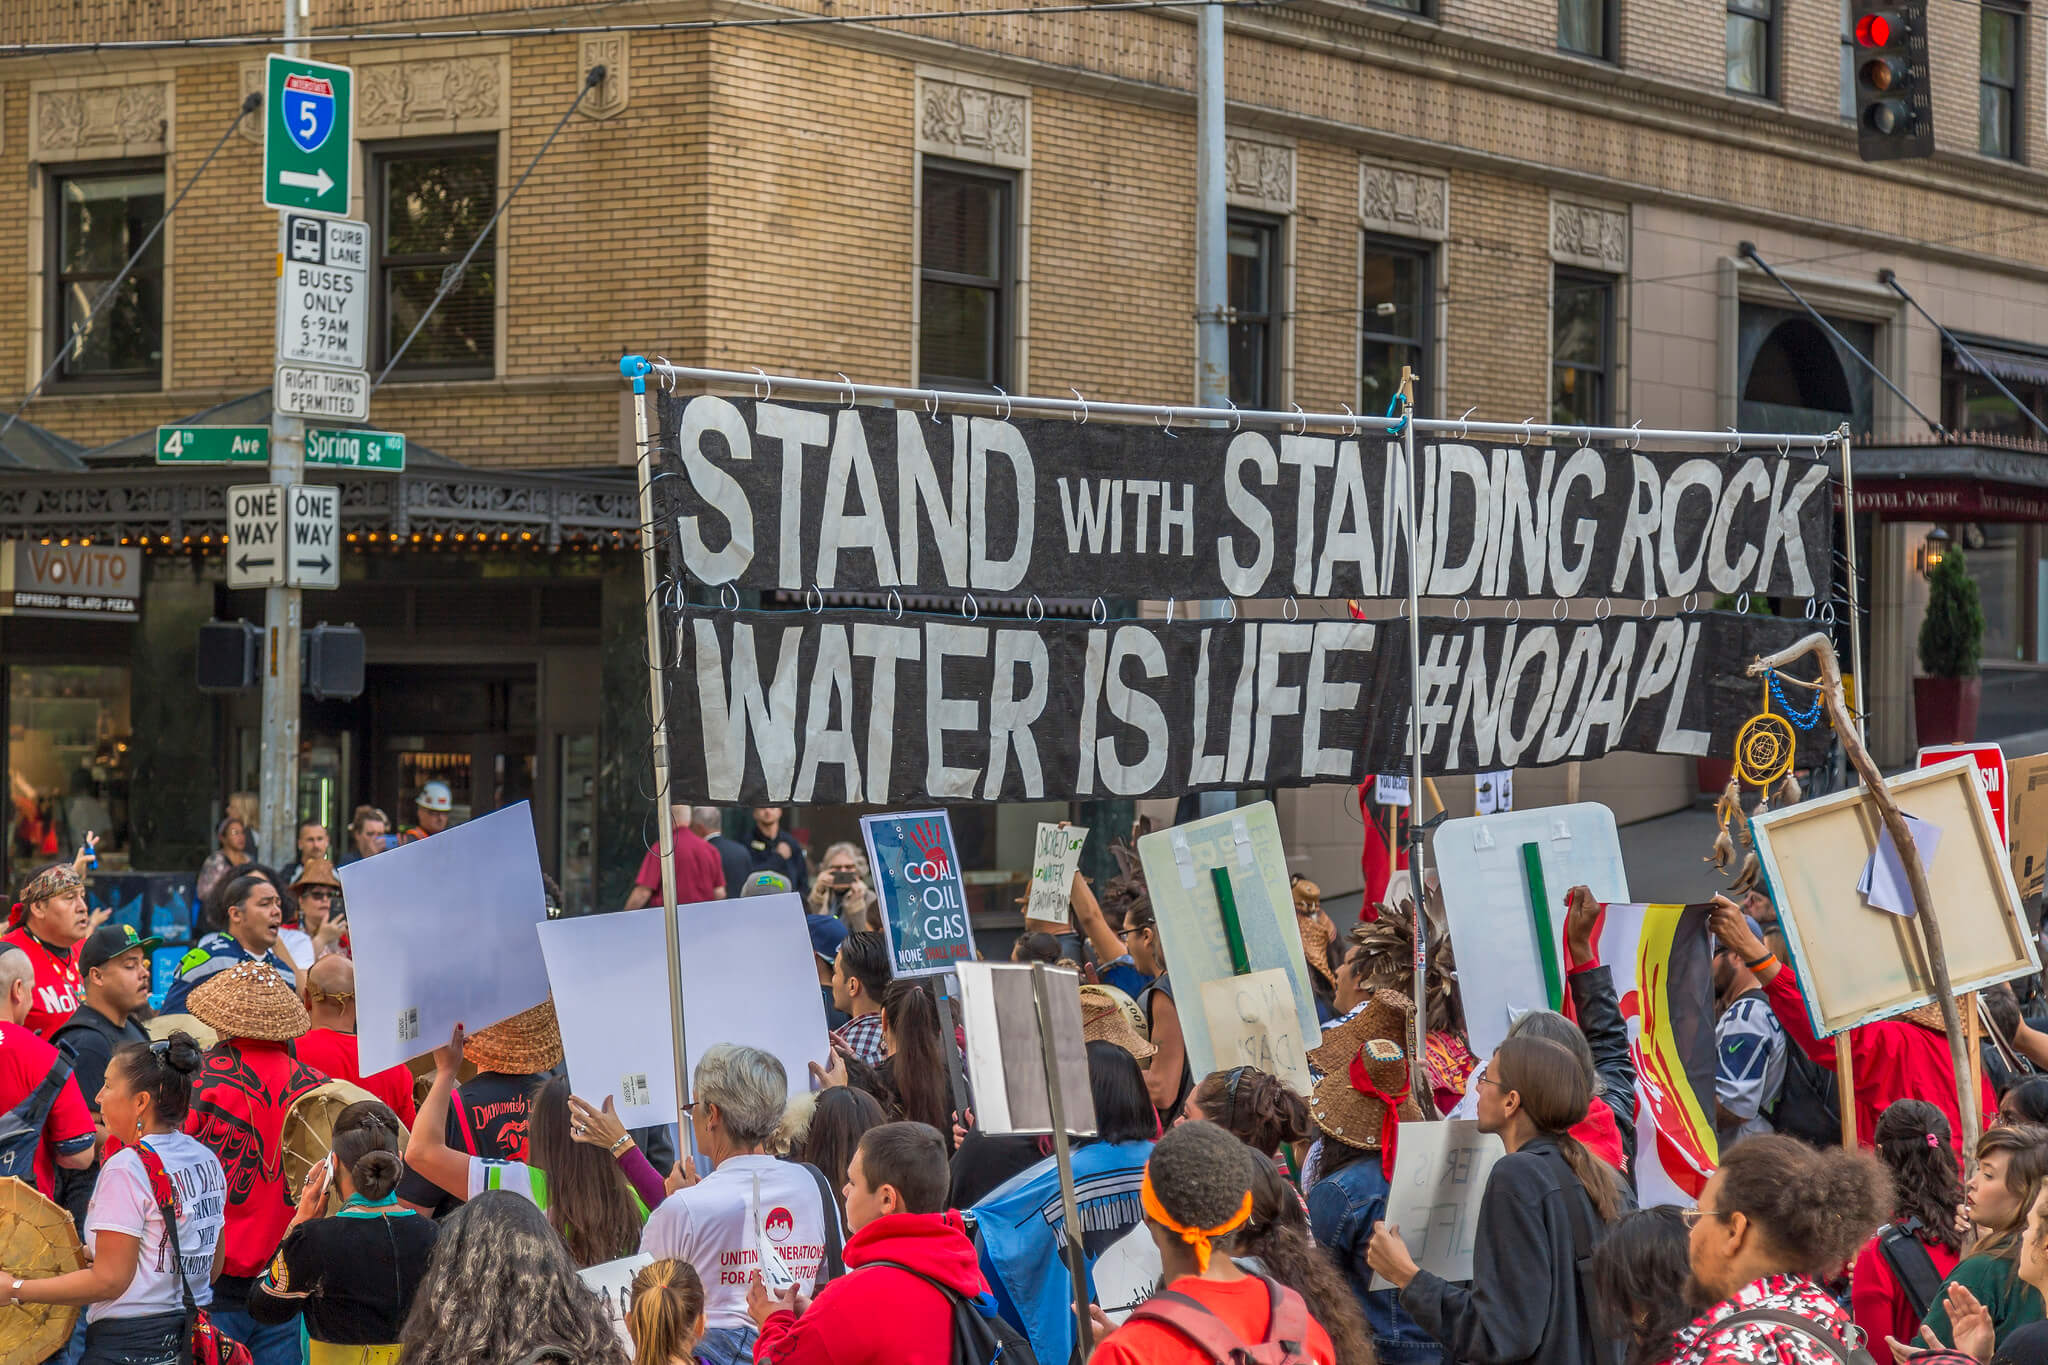 Stands with Standing Rock! Peaceful March & Rally Seattle, WA. Photo: John Duffy/flickr. Some Rights Reserved.